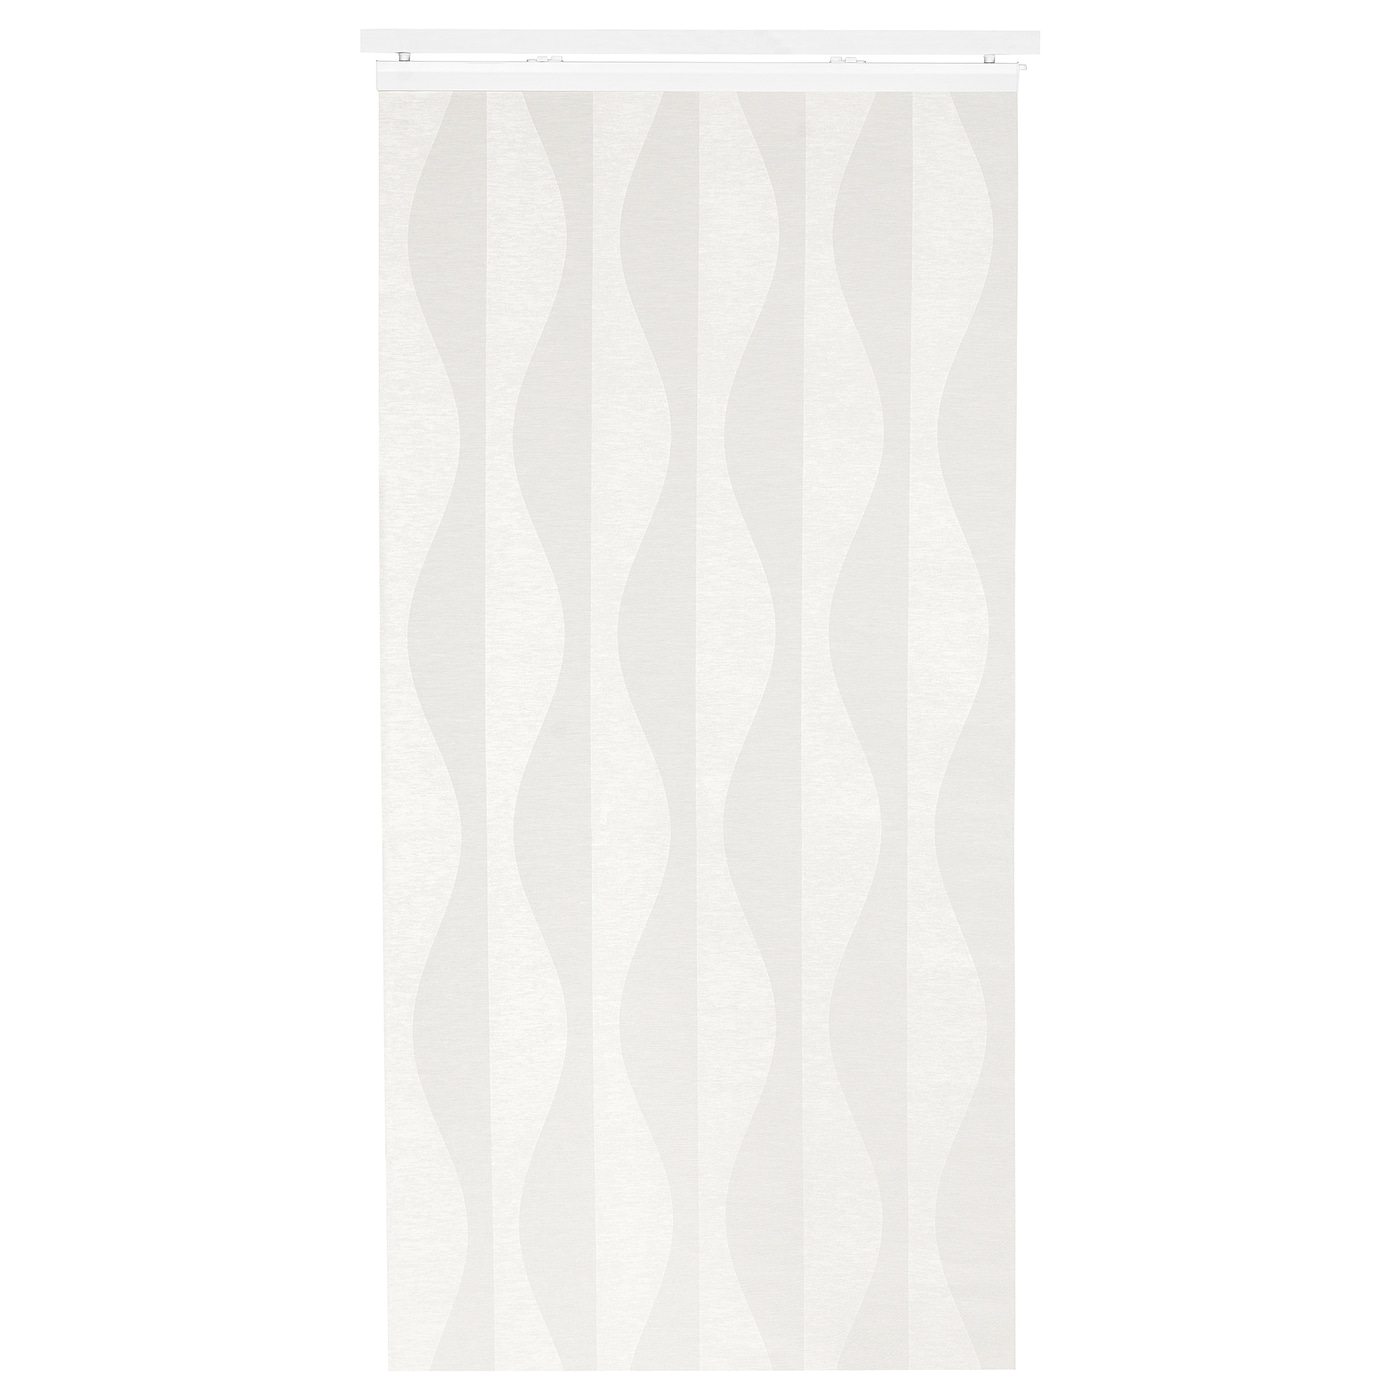 IKEA MURRUTA panel curtain You can cut the panel curtain to the desired length without hemming it.